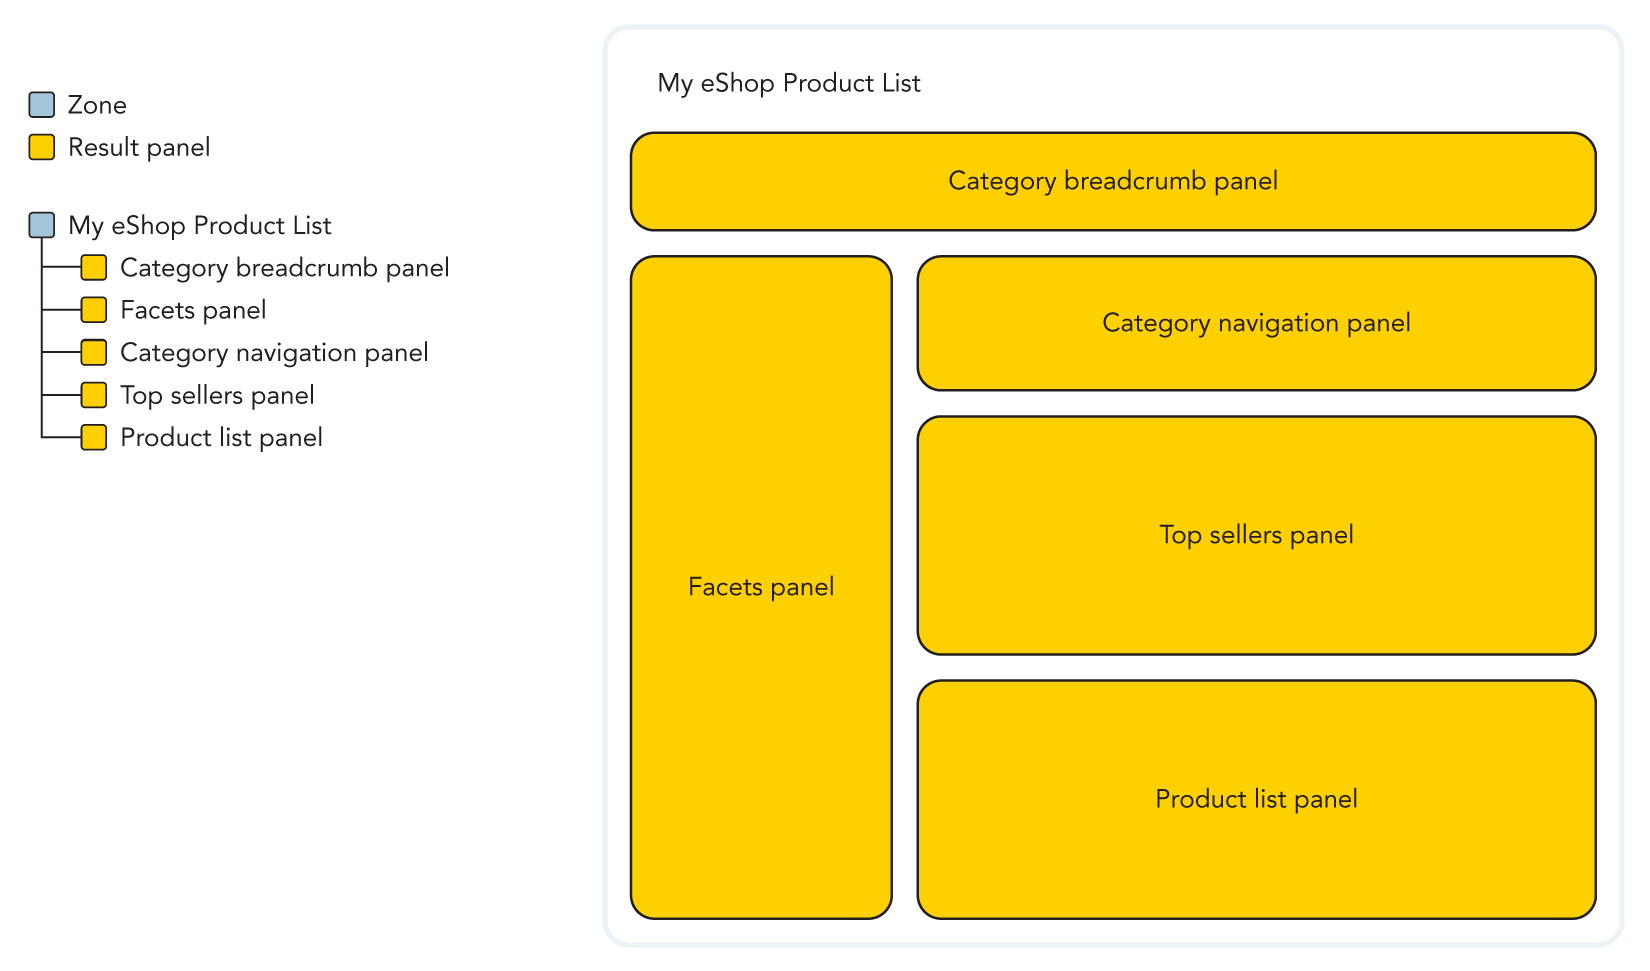 Illustration of the panel hierarchy of a product listing page with internal navigation and top sellers